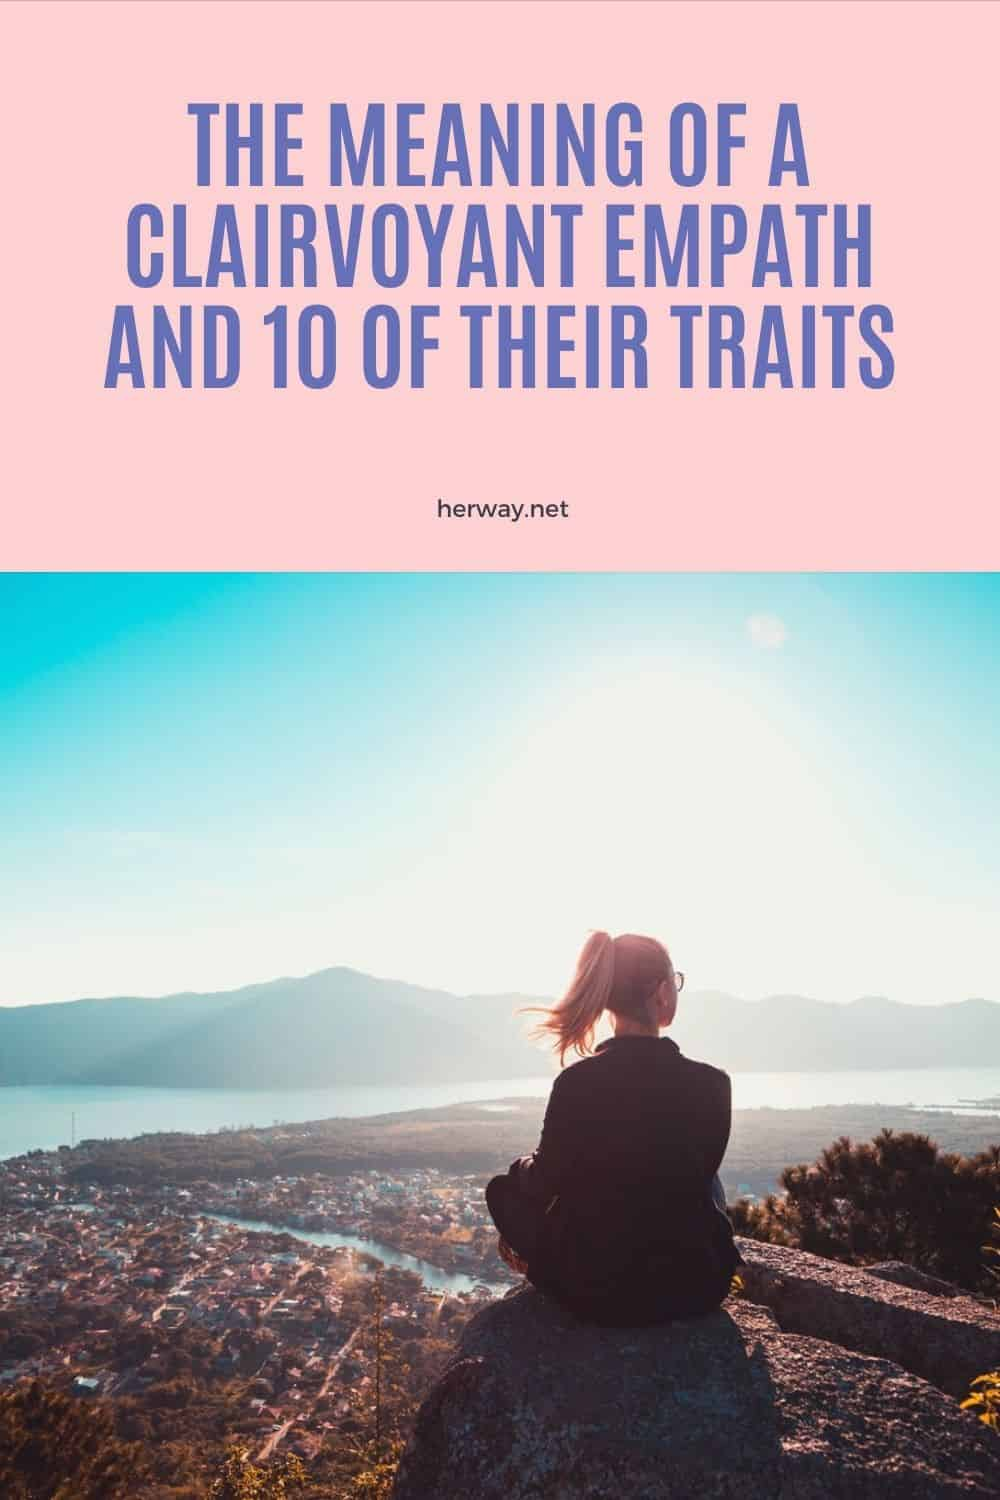 The Meaning Of A Clairvoyant Empath And 10 Of Their Traits